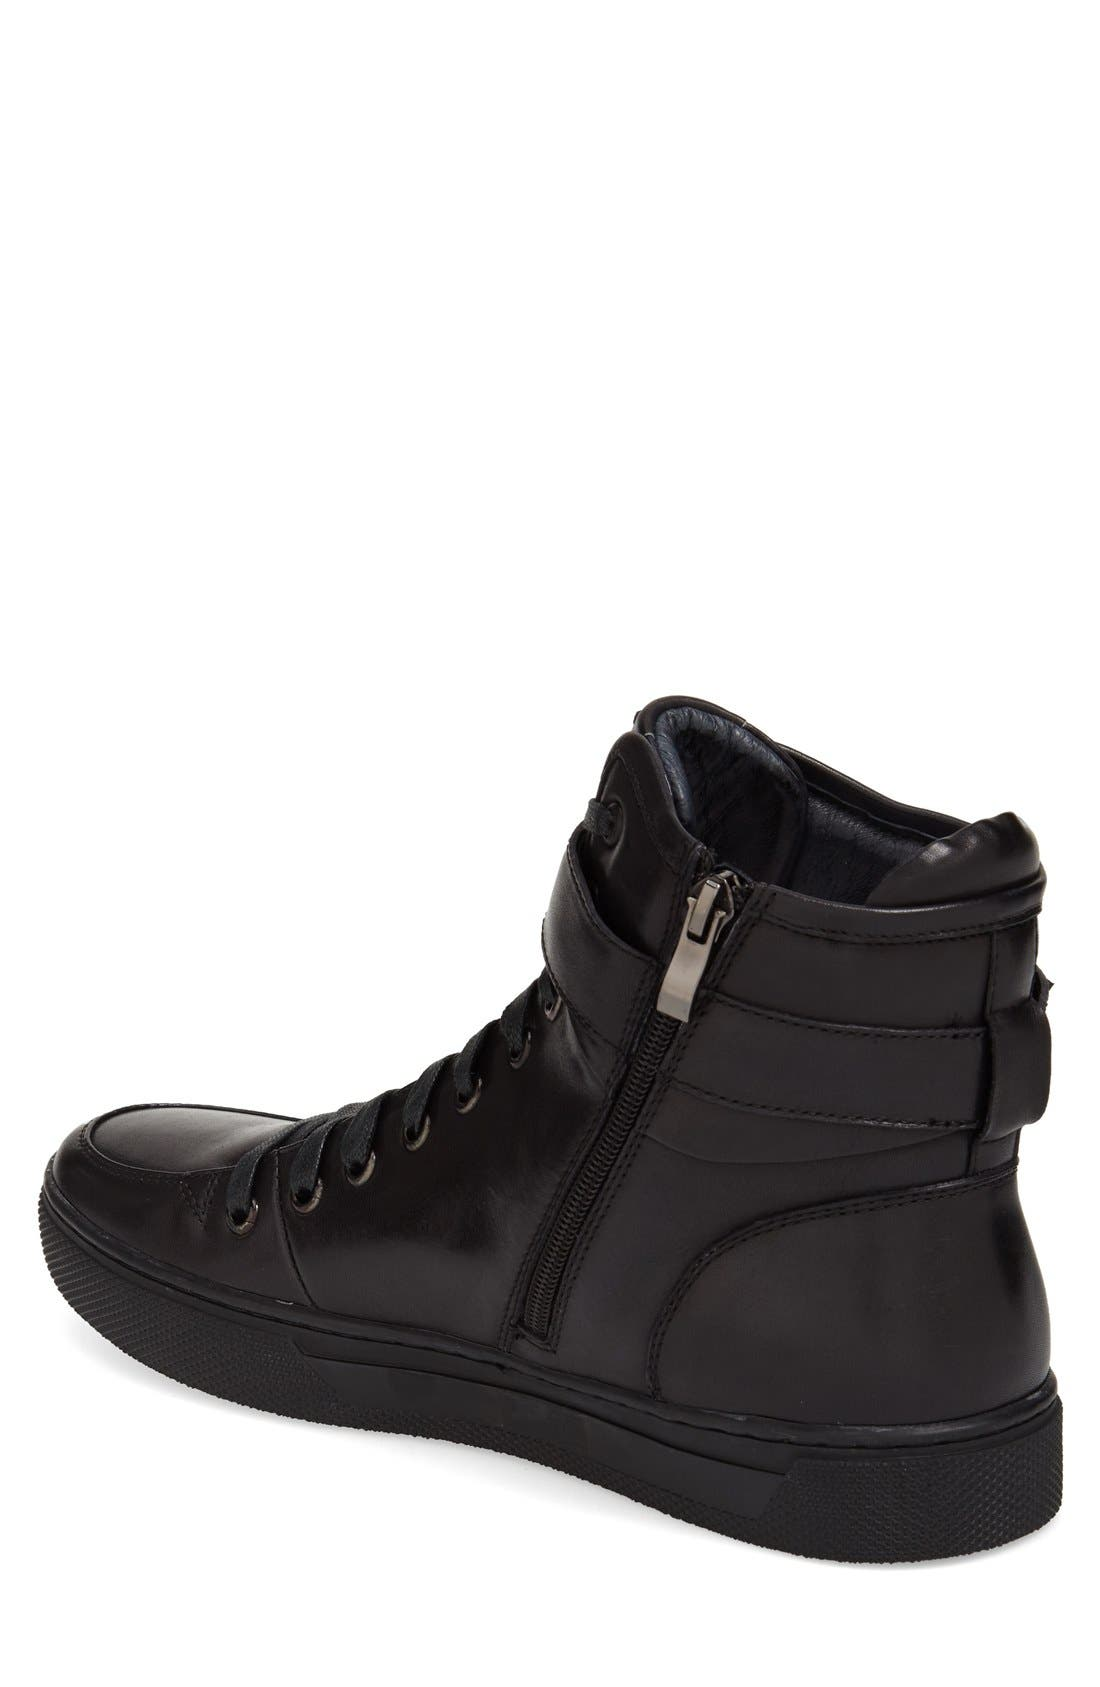 Sullivan High Top Sneaker,                             Alternate thumbnail 2, color,                             BLACK LEATHER